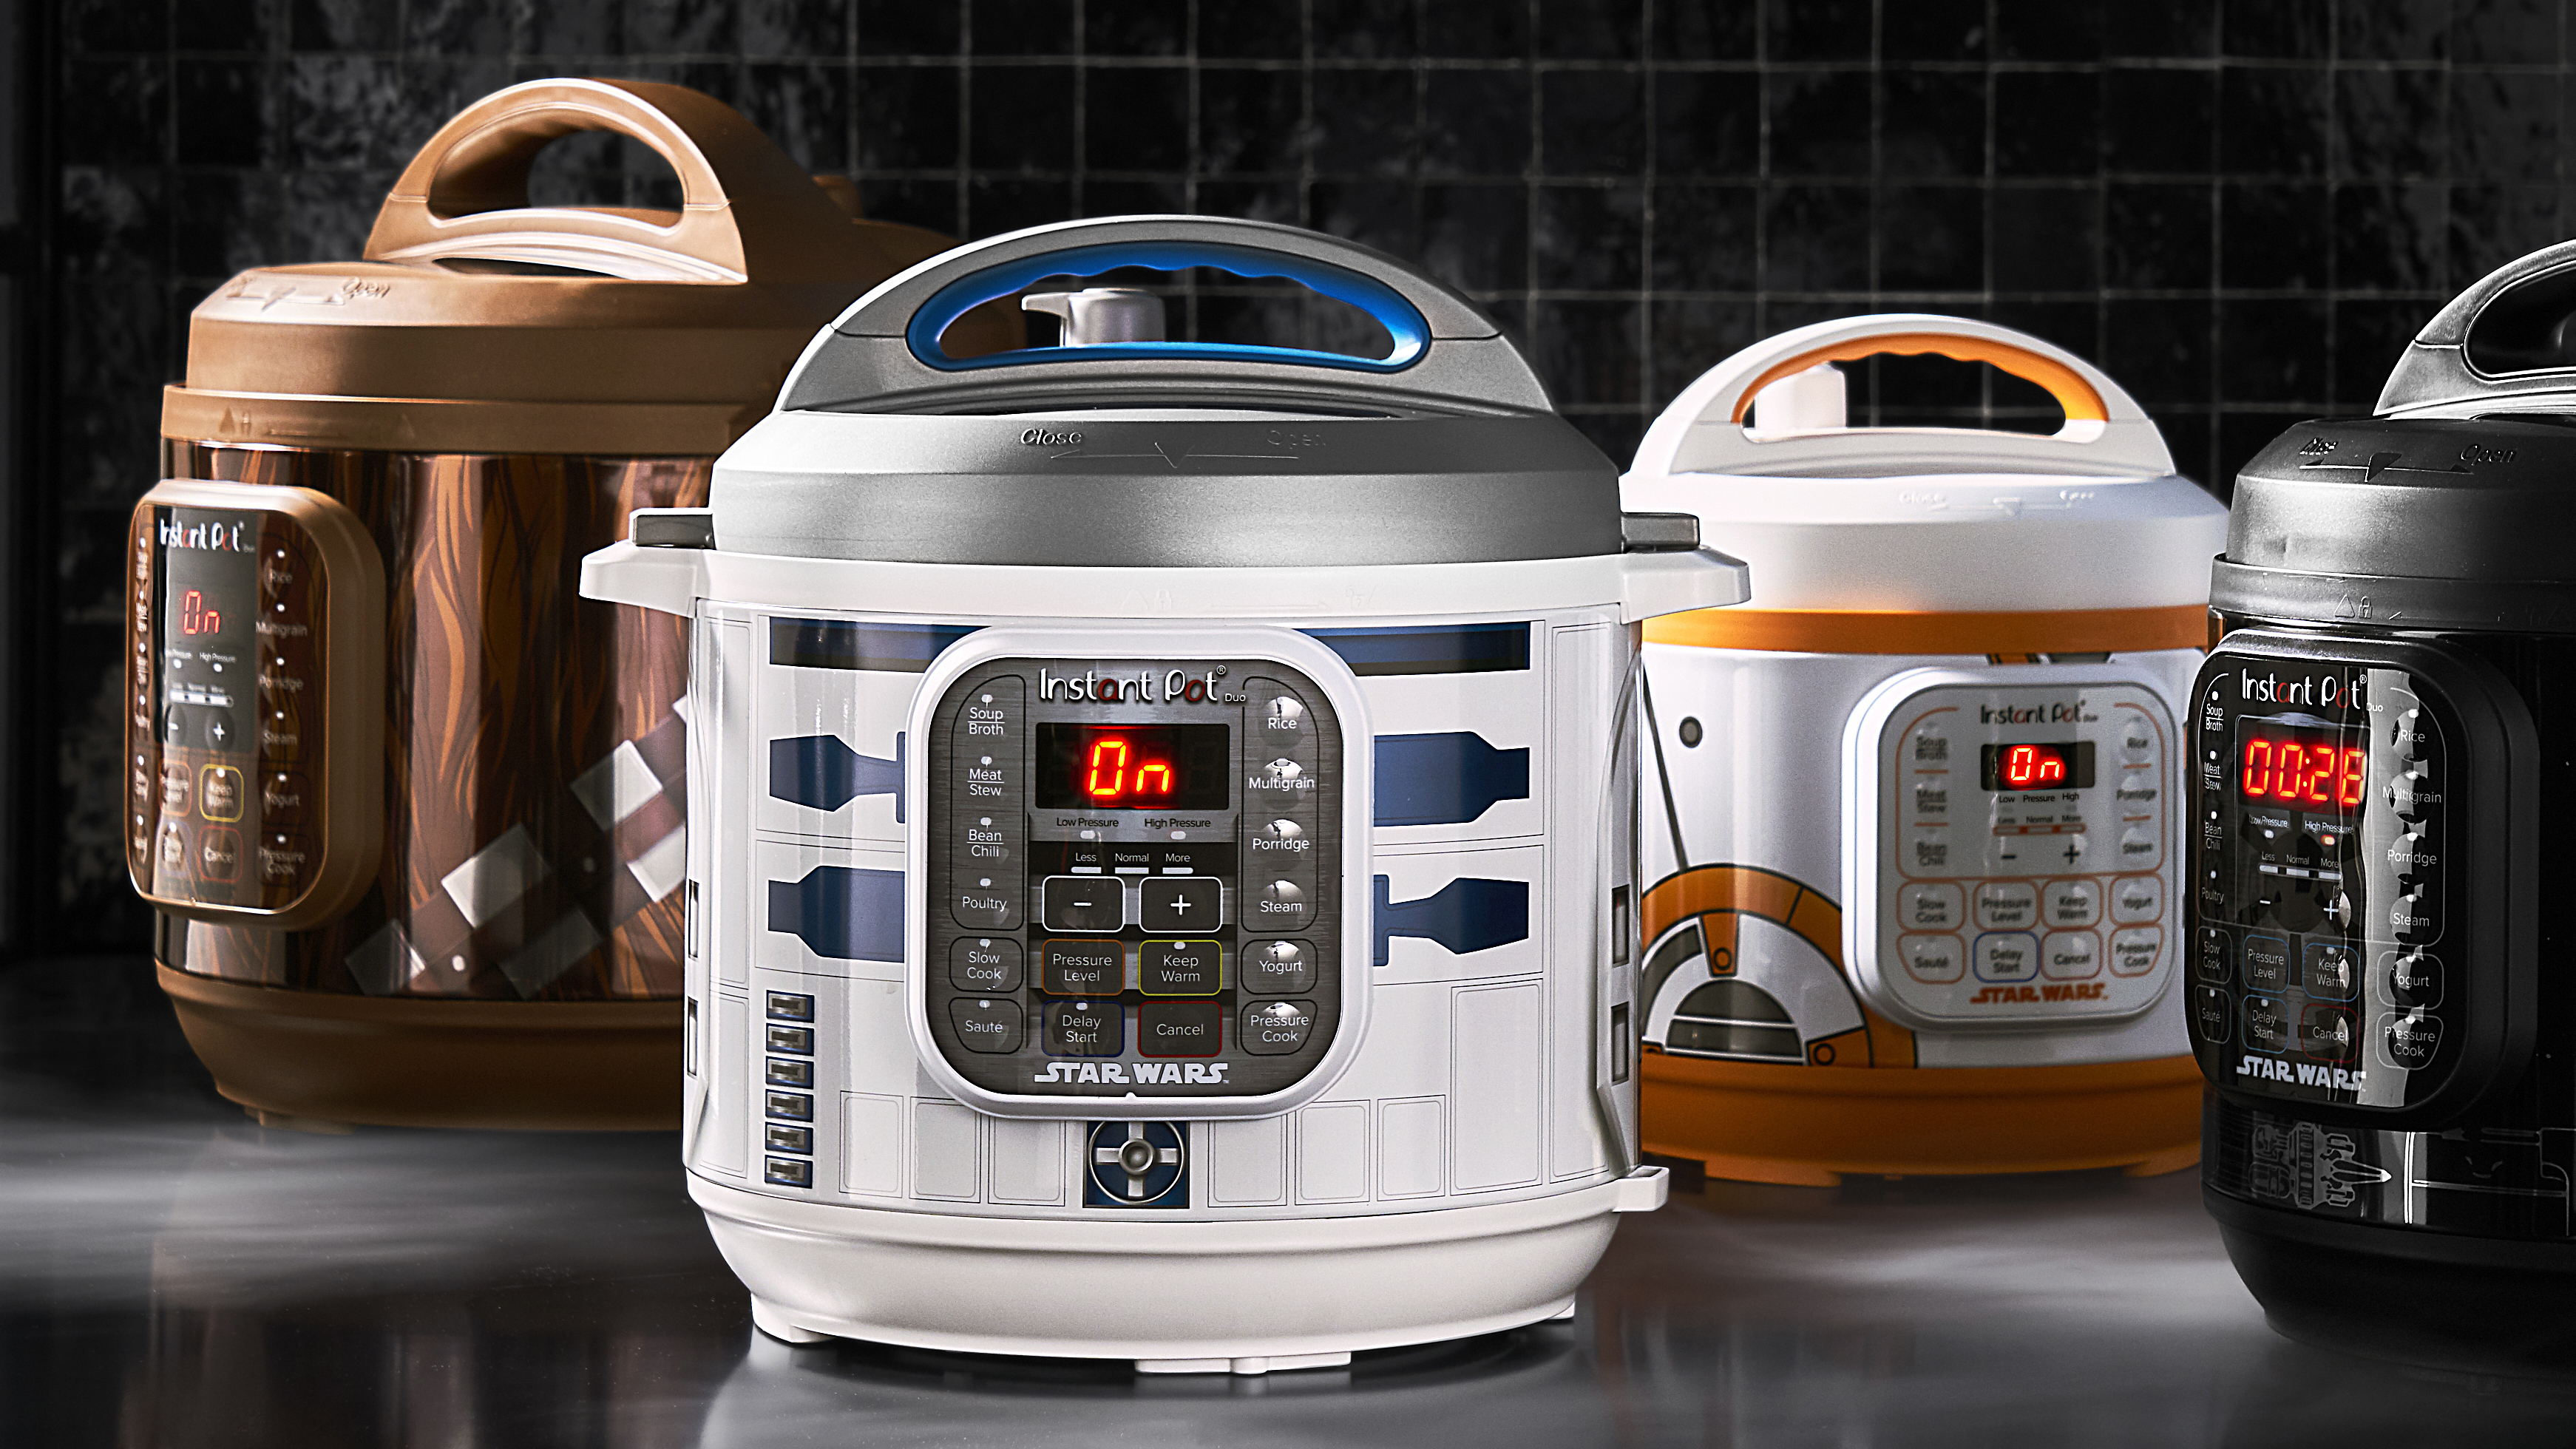 'Star Wars'-themed Instant Pots that look like R2-D2, Chewbacca now available for your rootleaf-stew needs